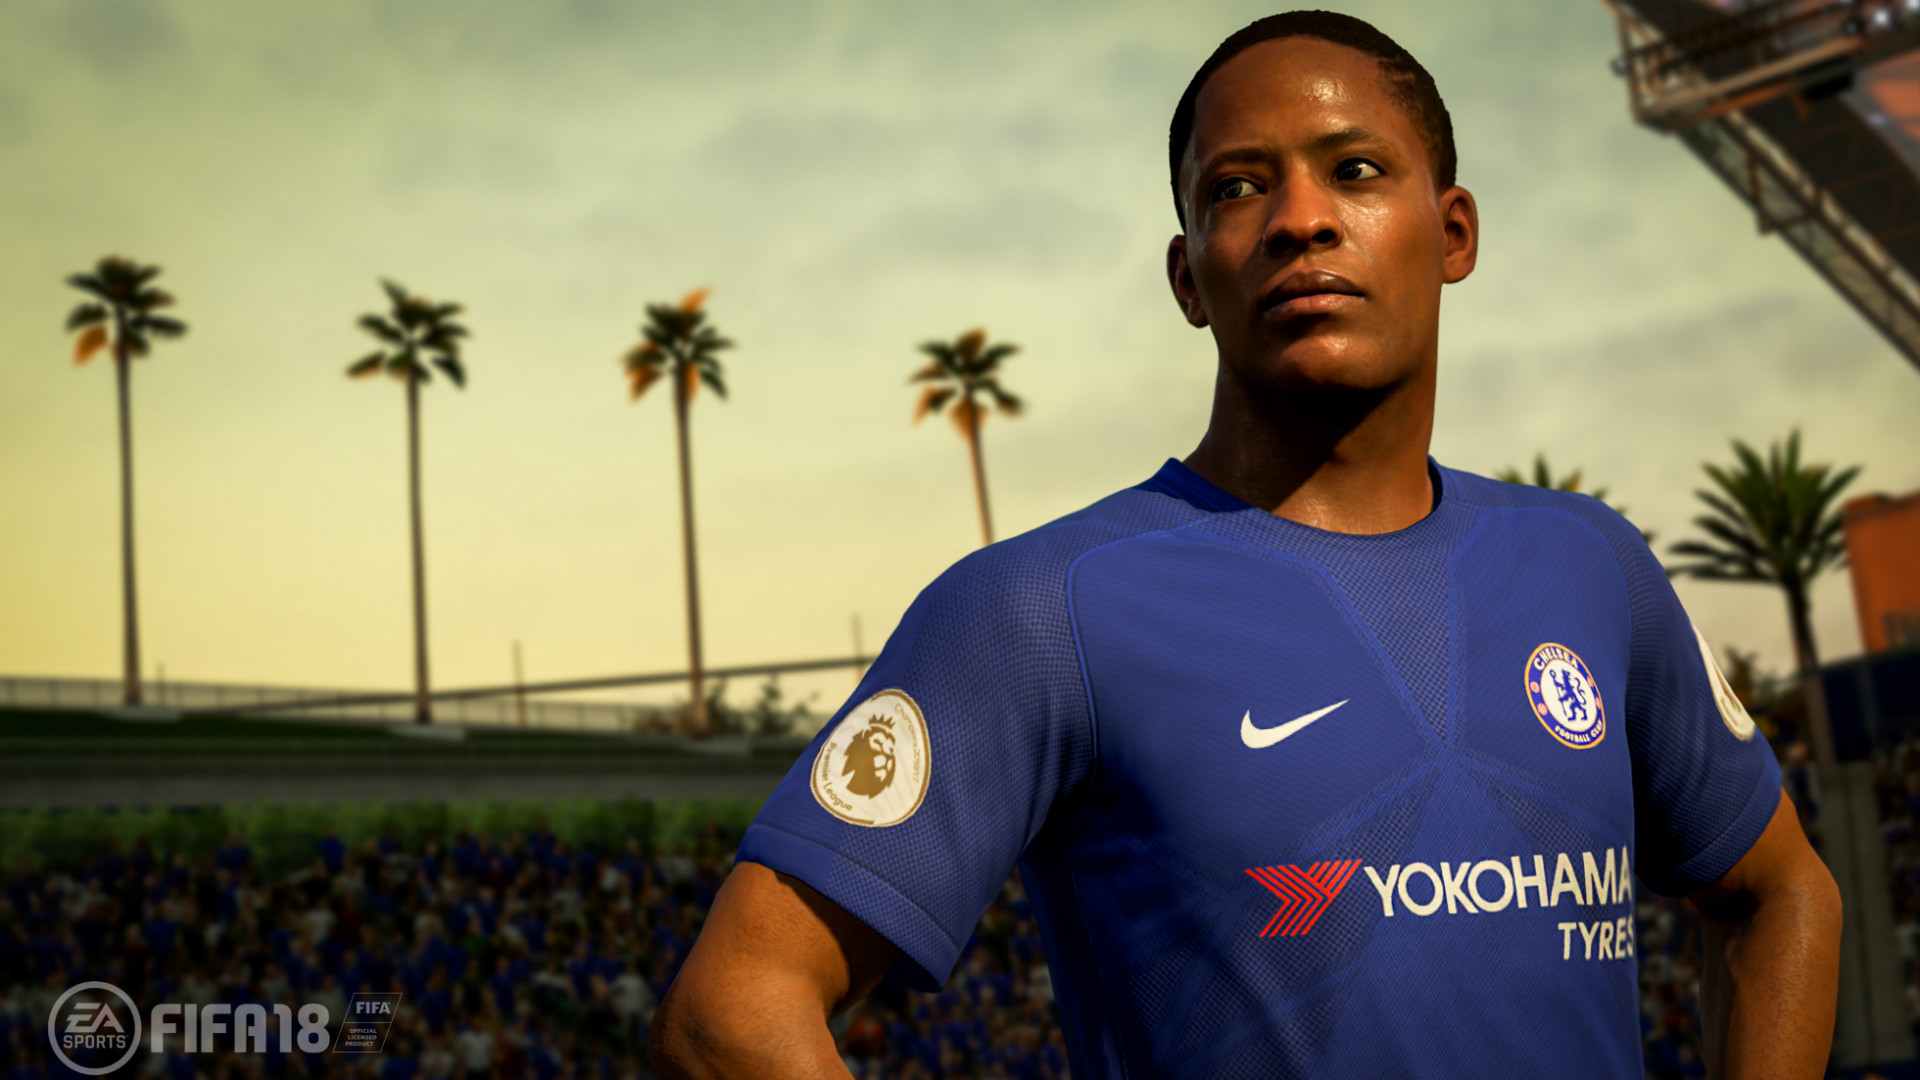 FIFA 18 s Alex Hunter used to reveal Chelsea s home kit for 2017-18 season af81ed37d